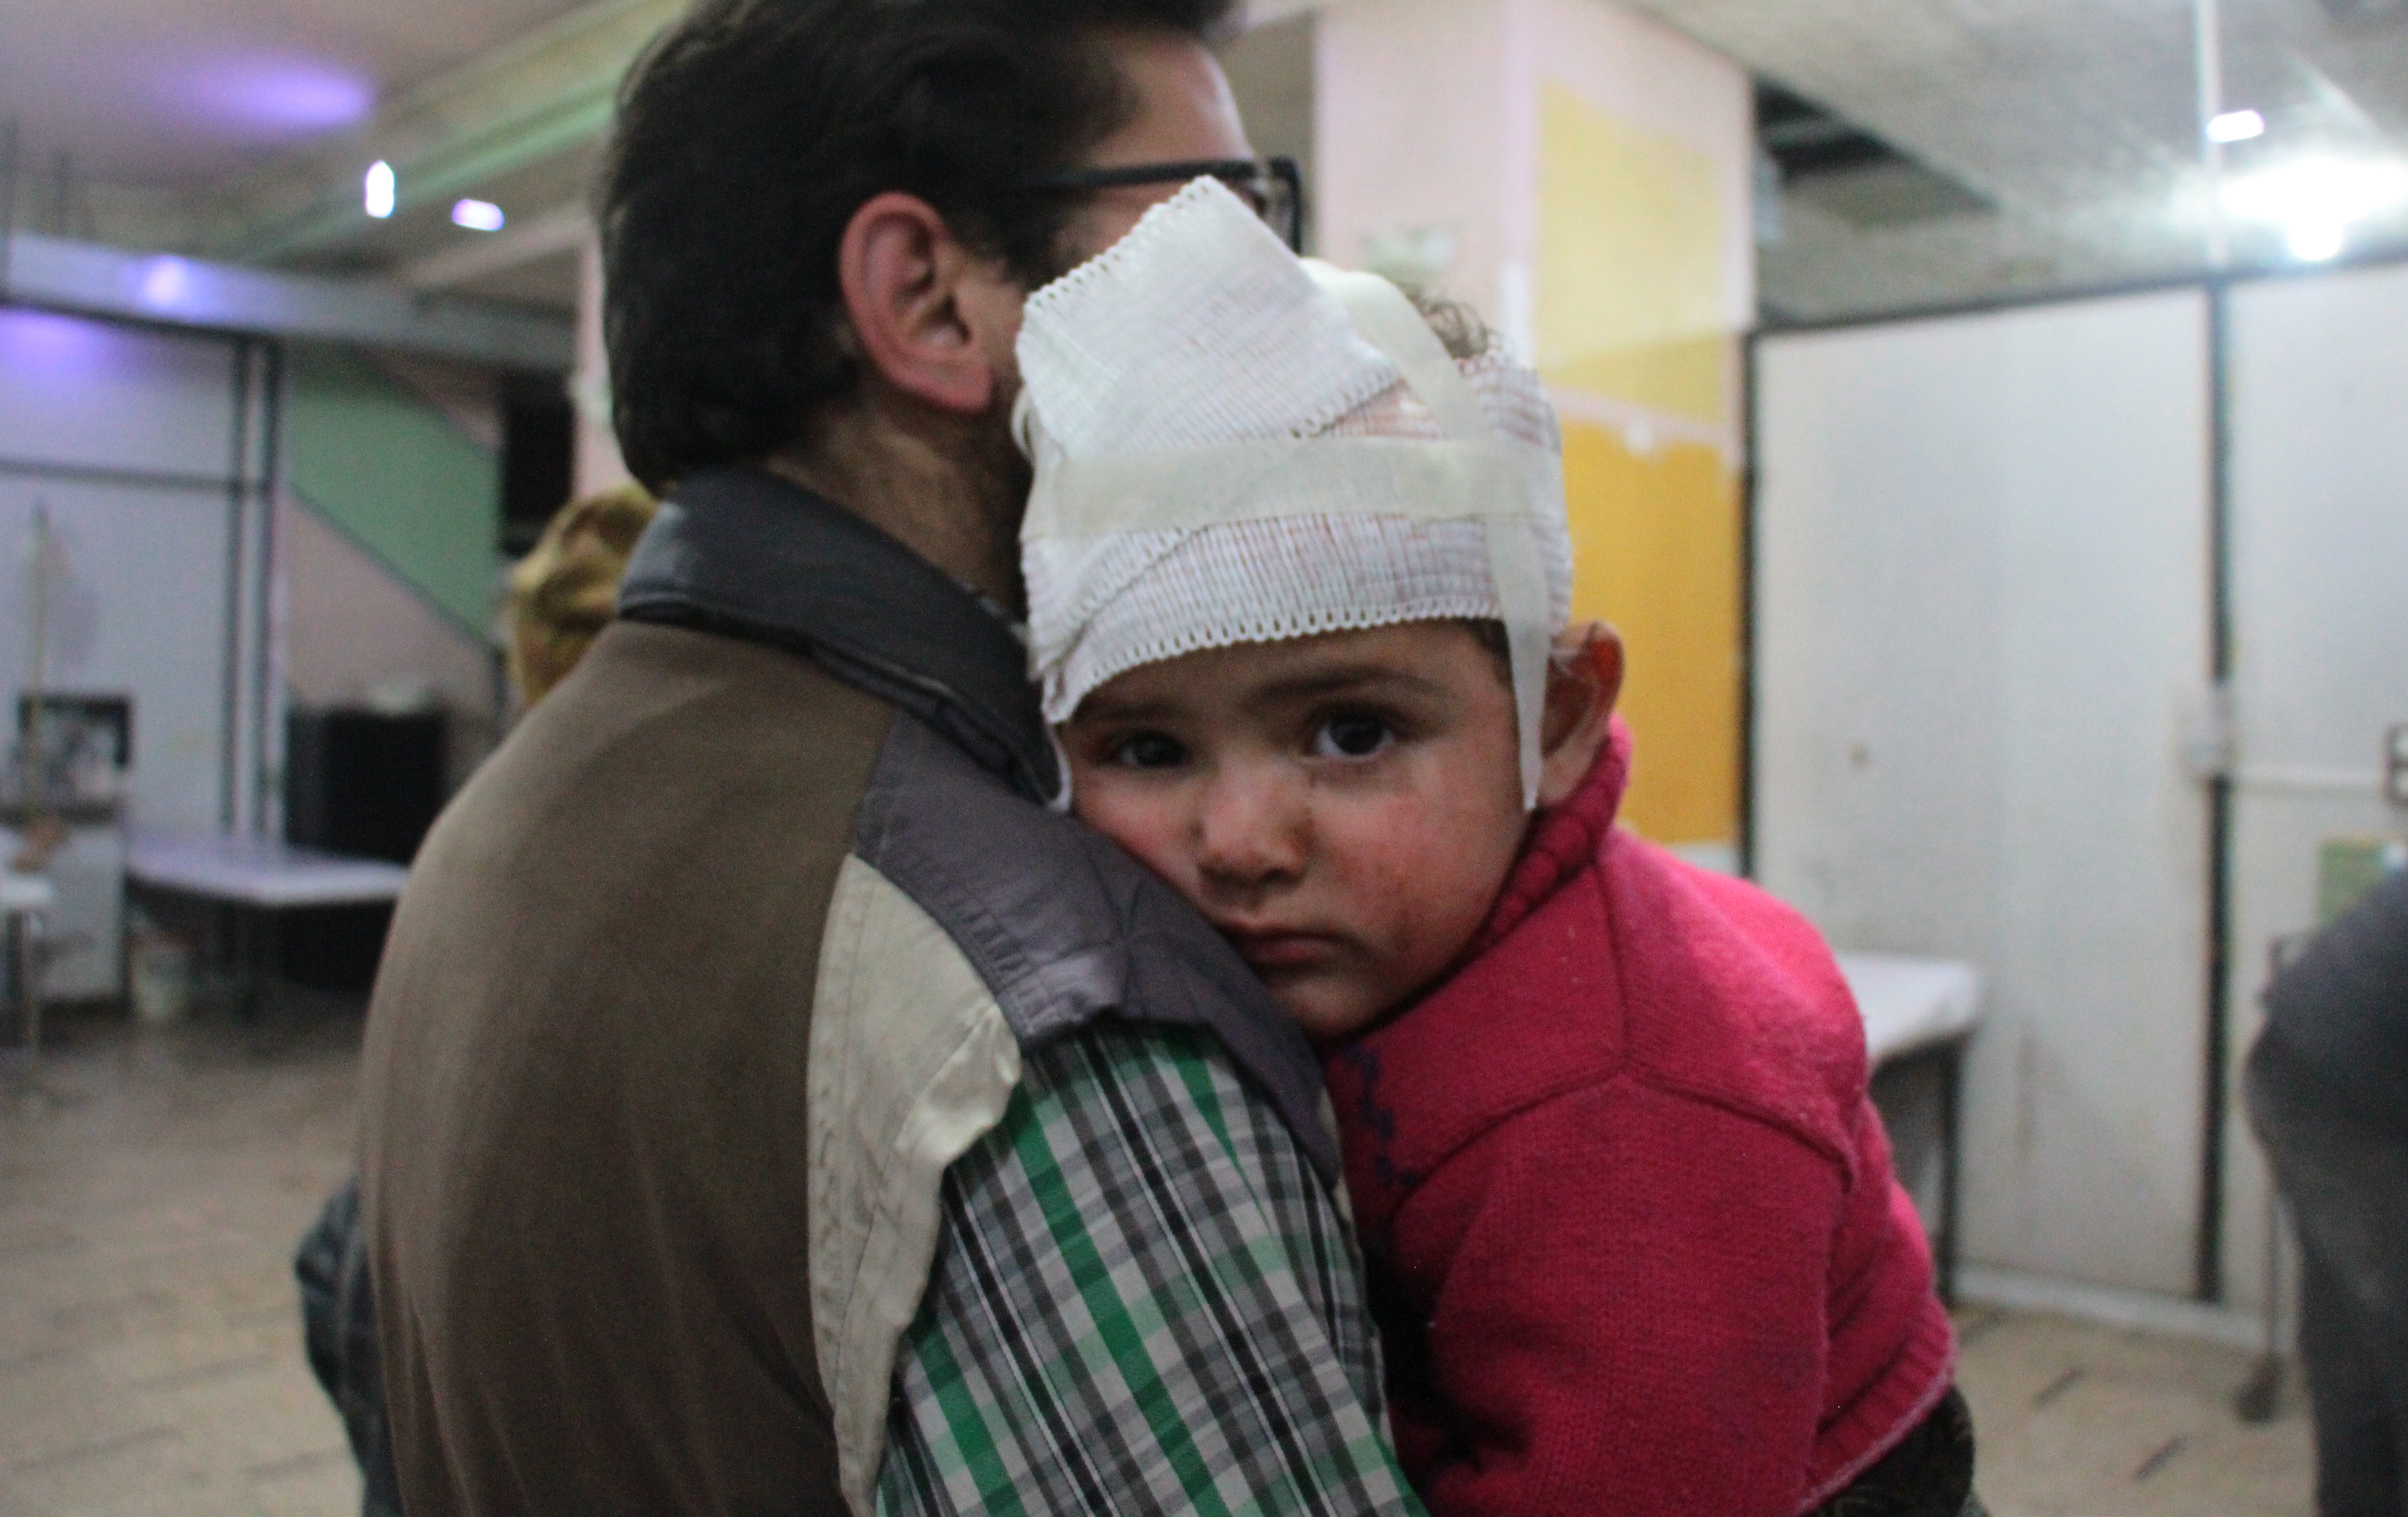 UNICEF's response in East Ghouta